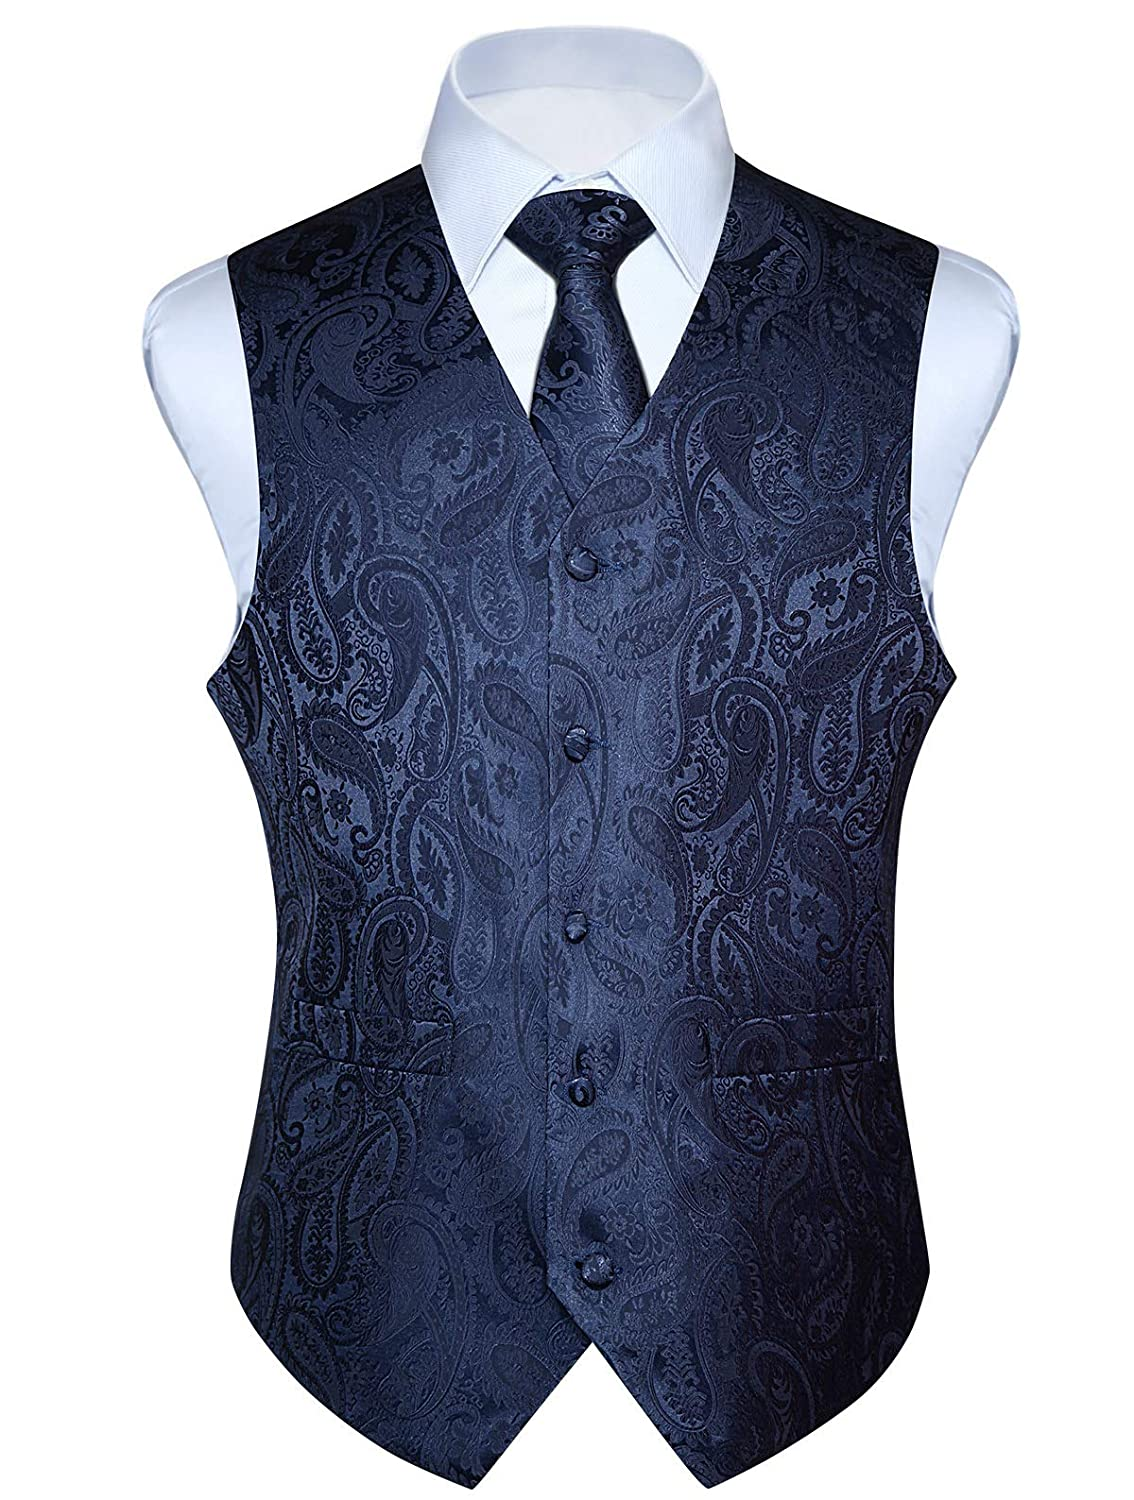 HISDERN Mens Paisley Jacquard Solid Waistcoat /& Necktie and Pocket Square Vest Suit Tuxedo Set